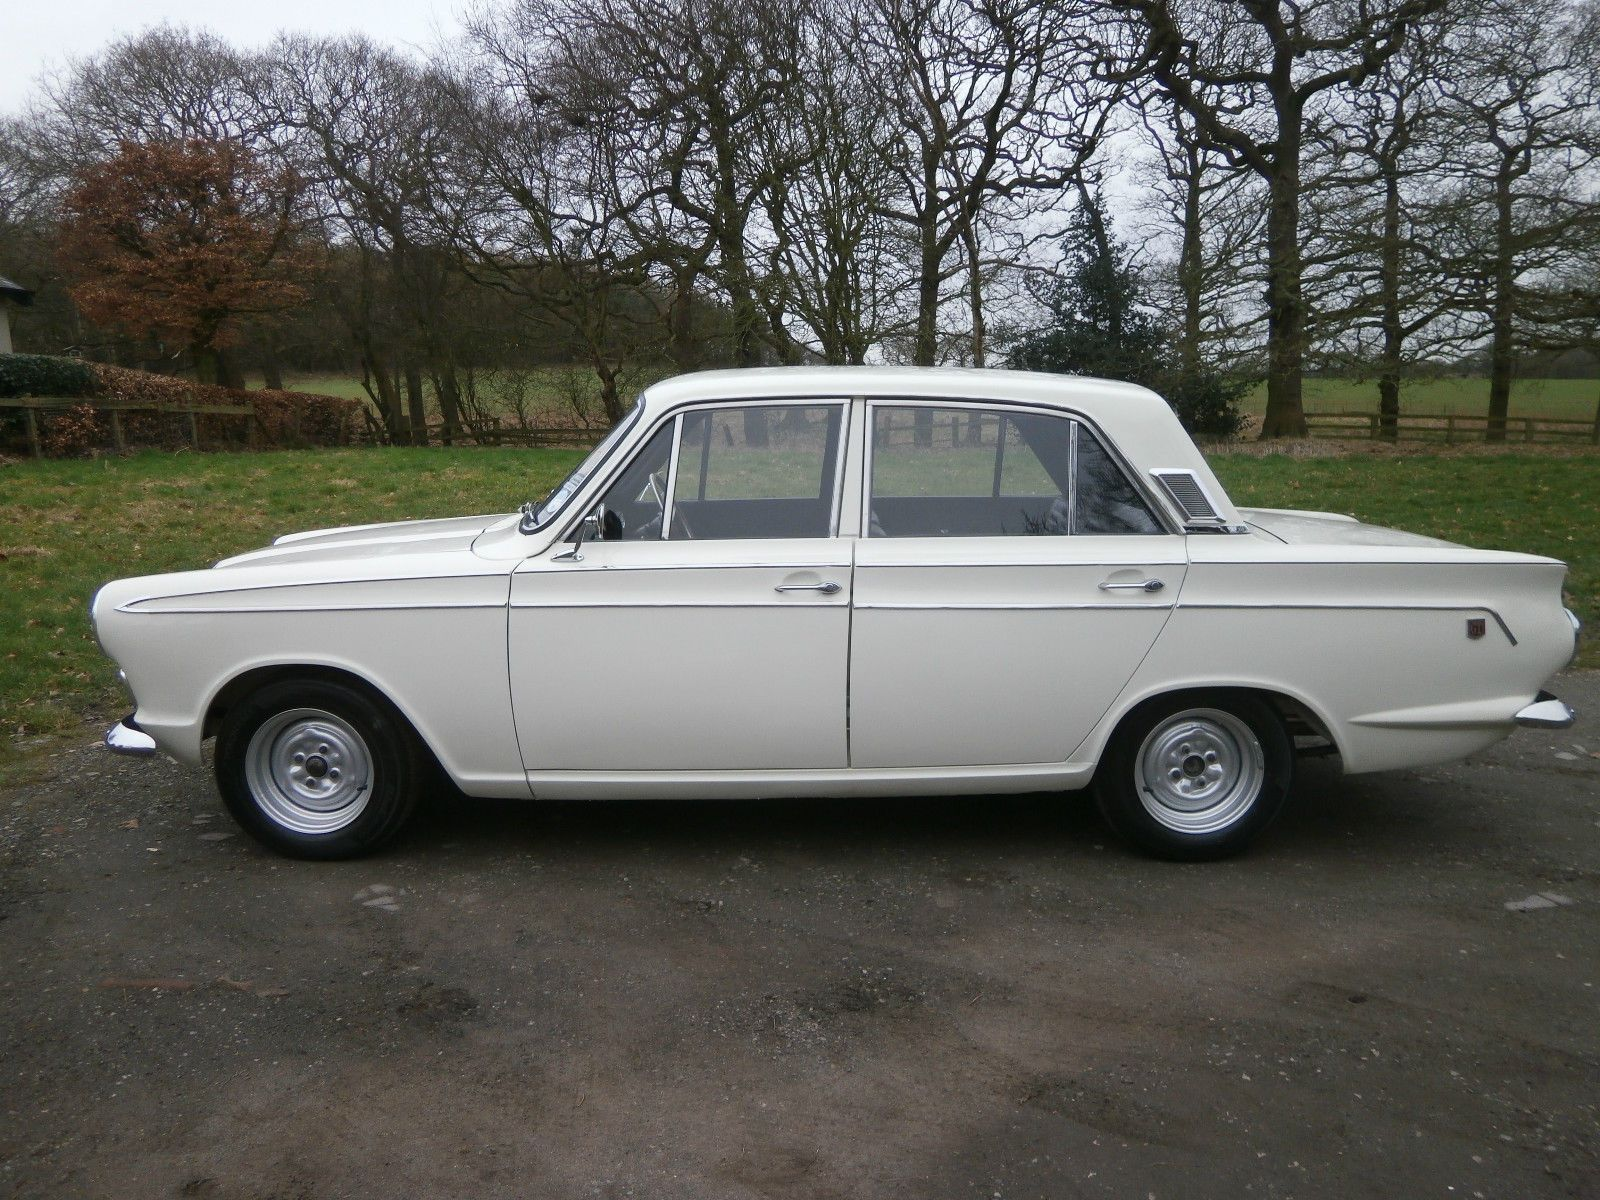 1966 D Ford Cortina Mk1 Export Gt 4dr In Ermine White Black Interior Rare Ebay Black Interior Mk1 Ford